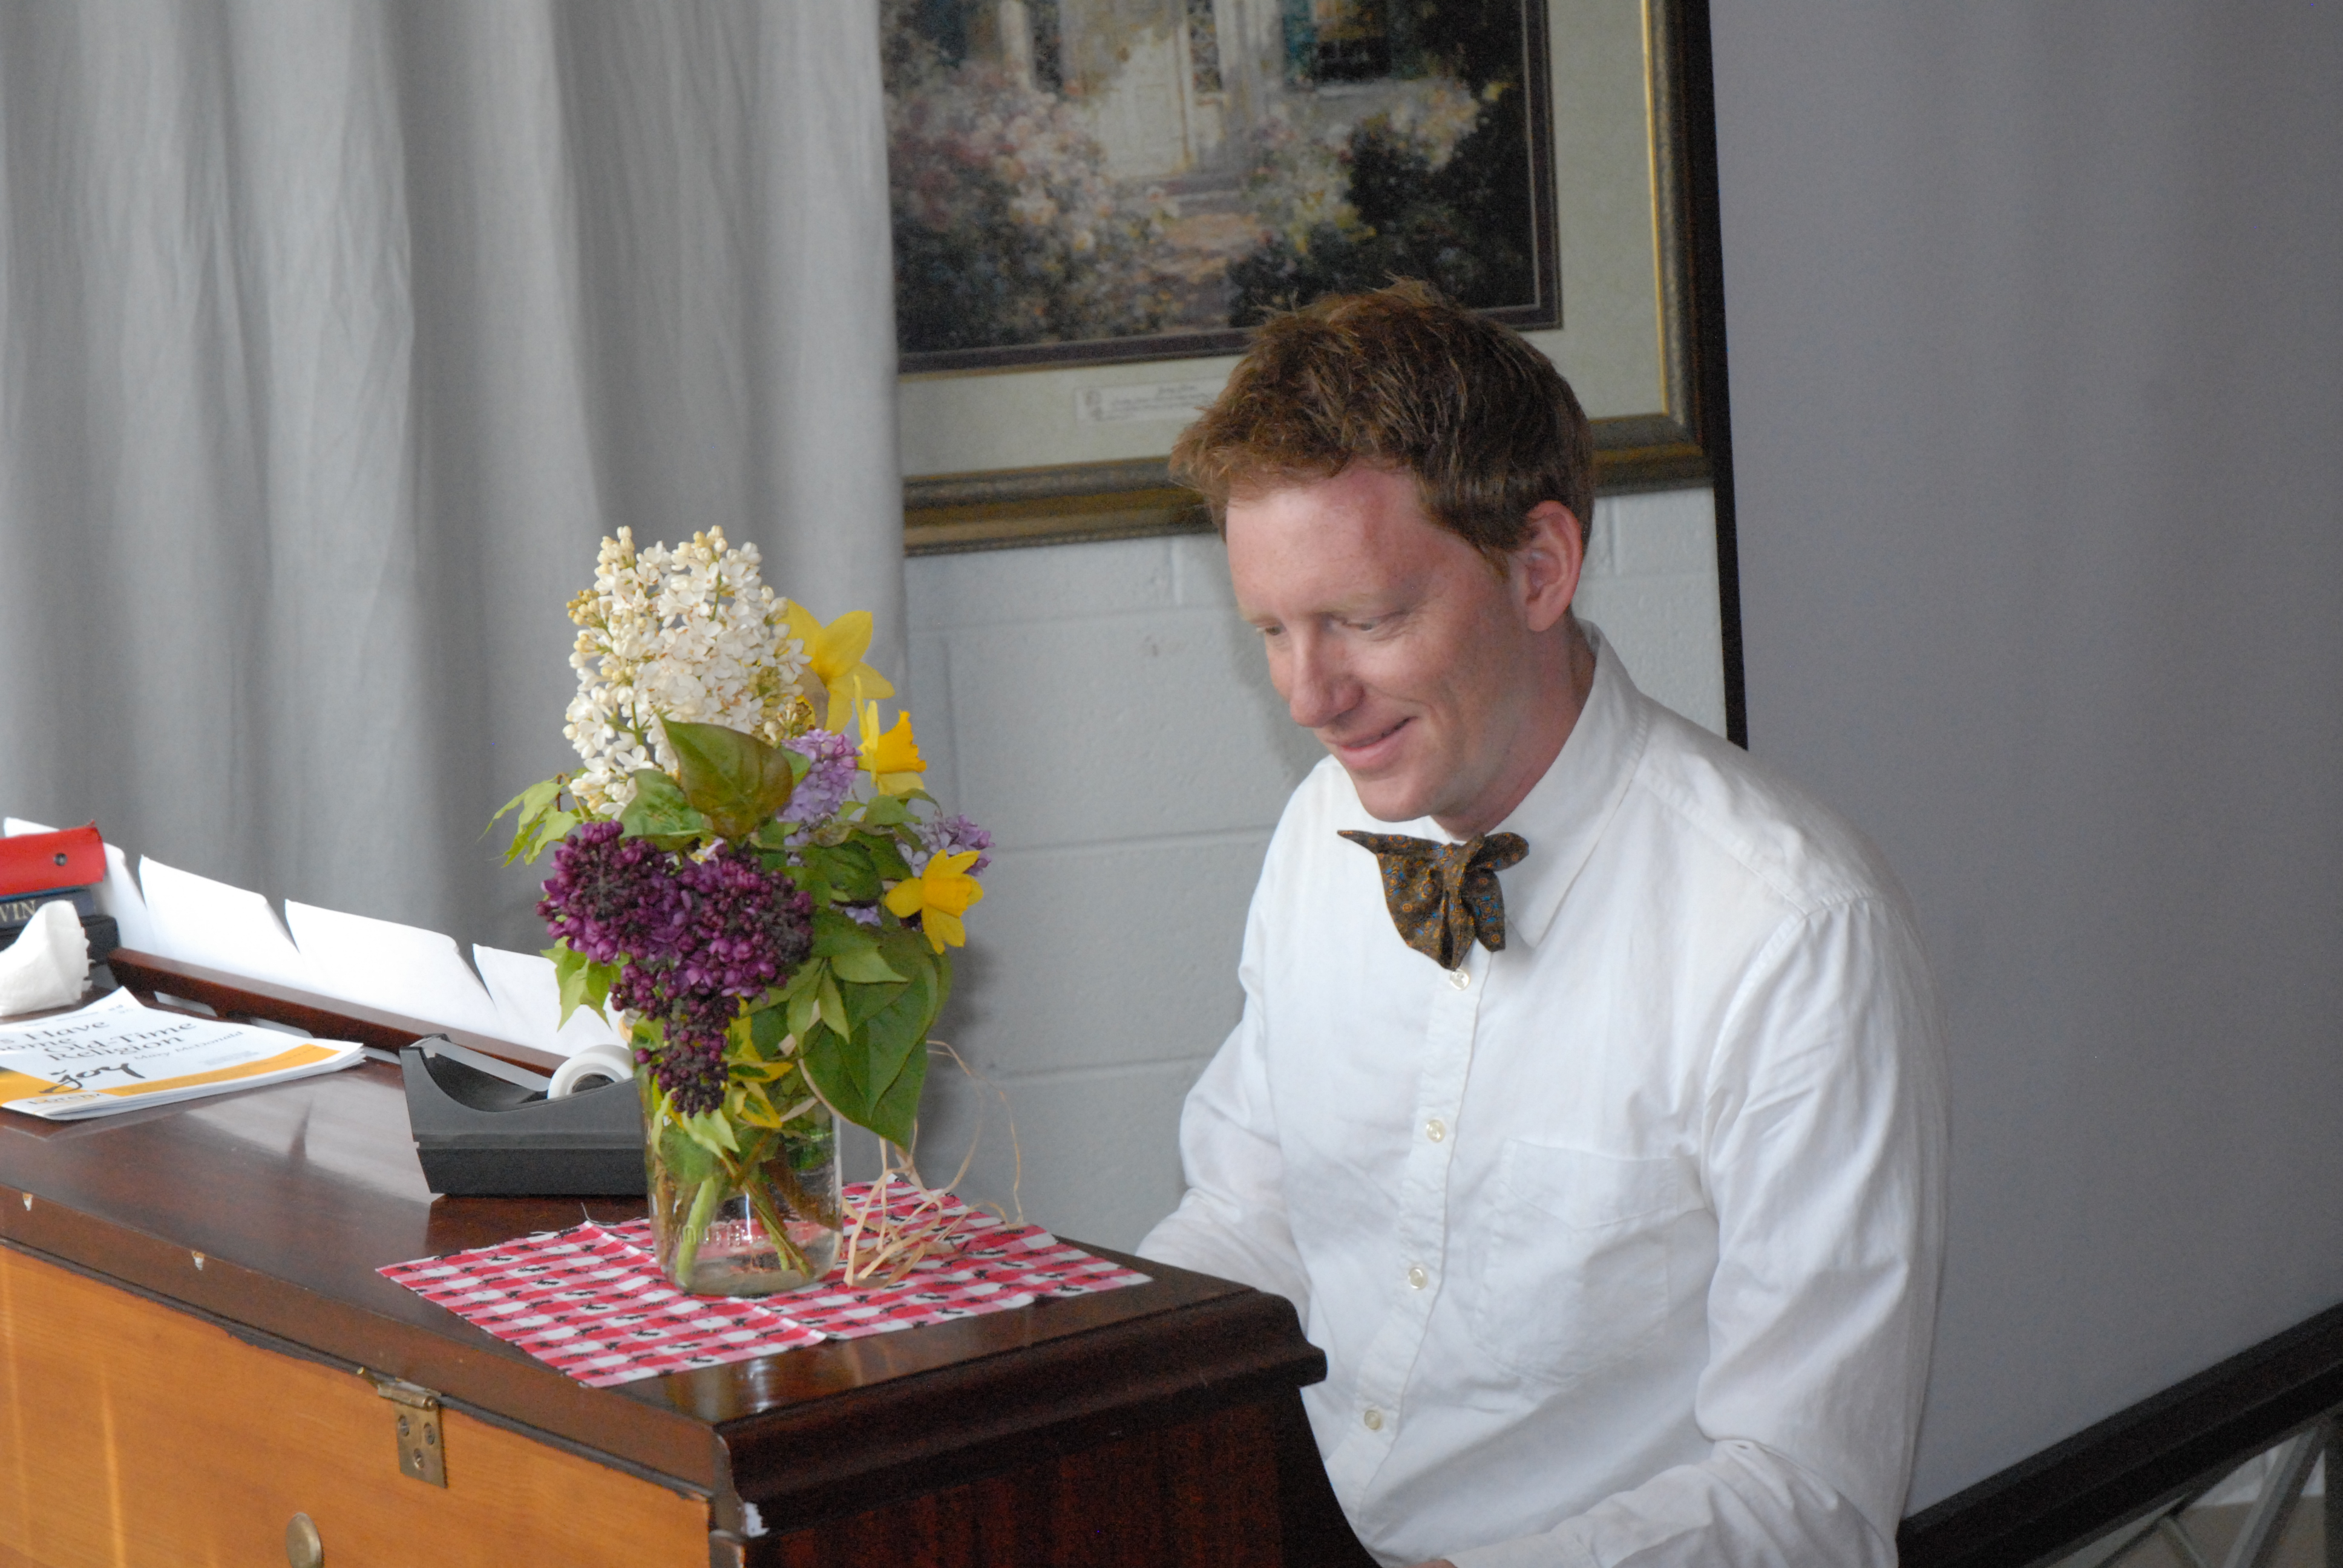 Pianist at Tent Revival